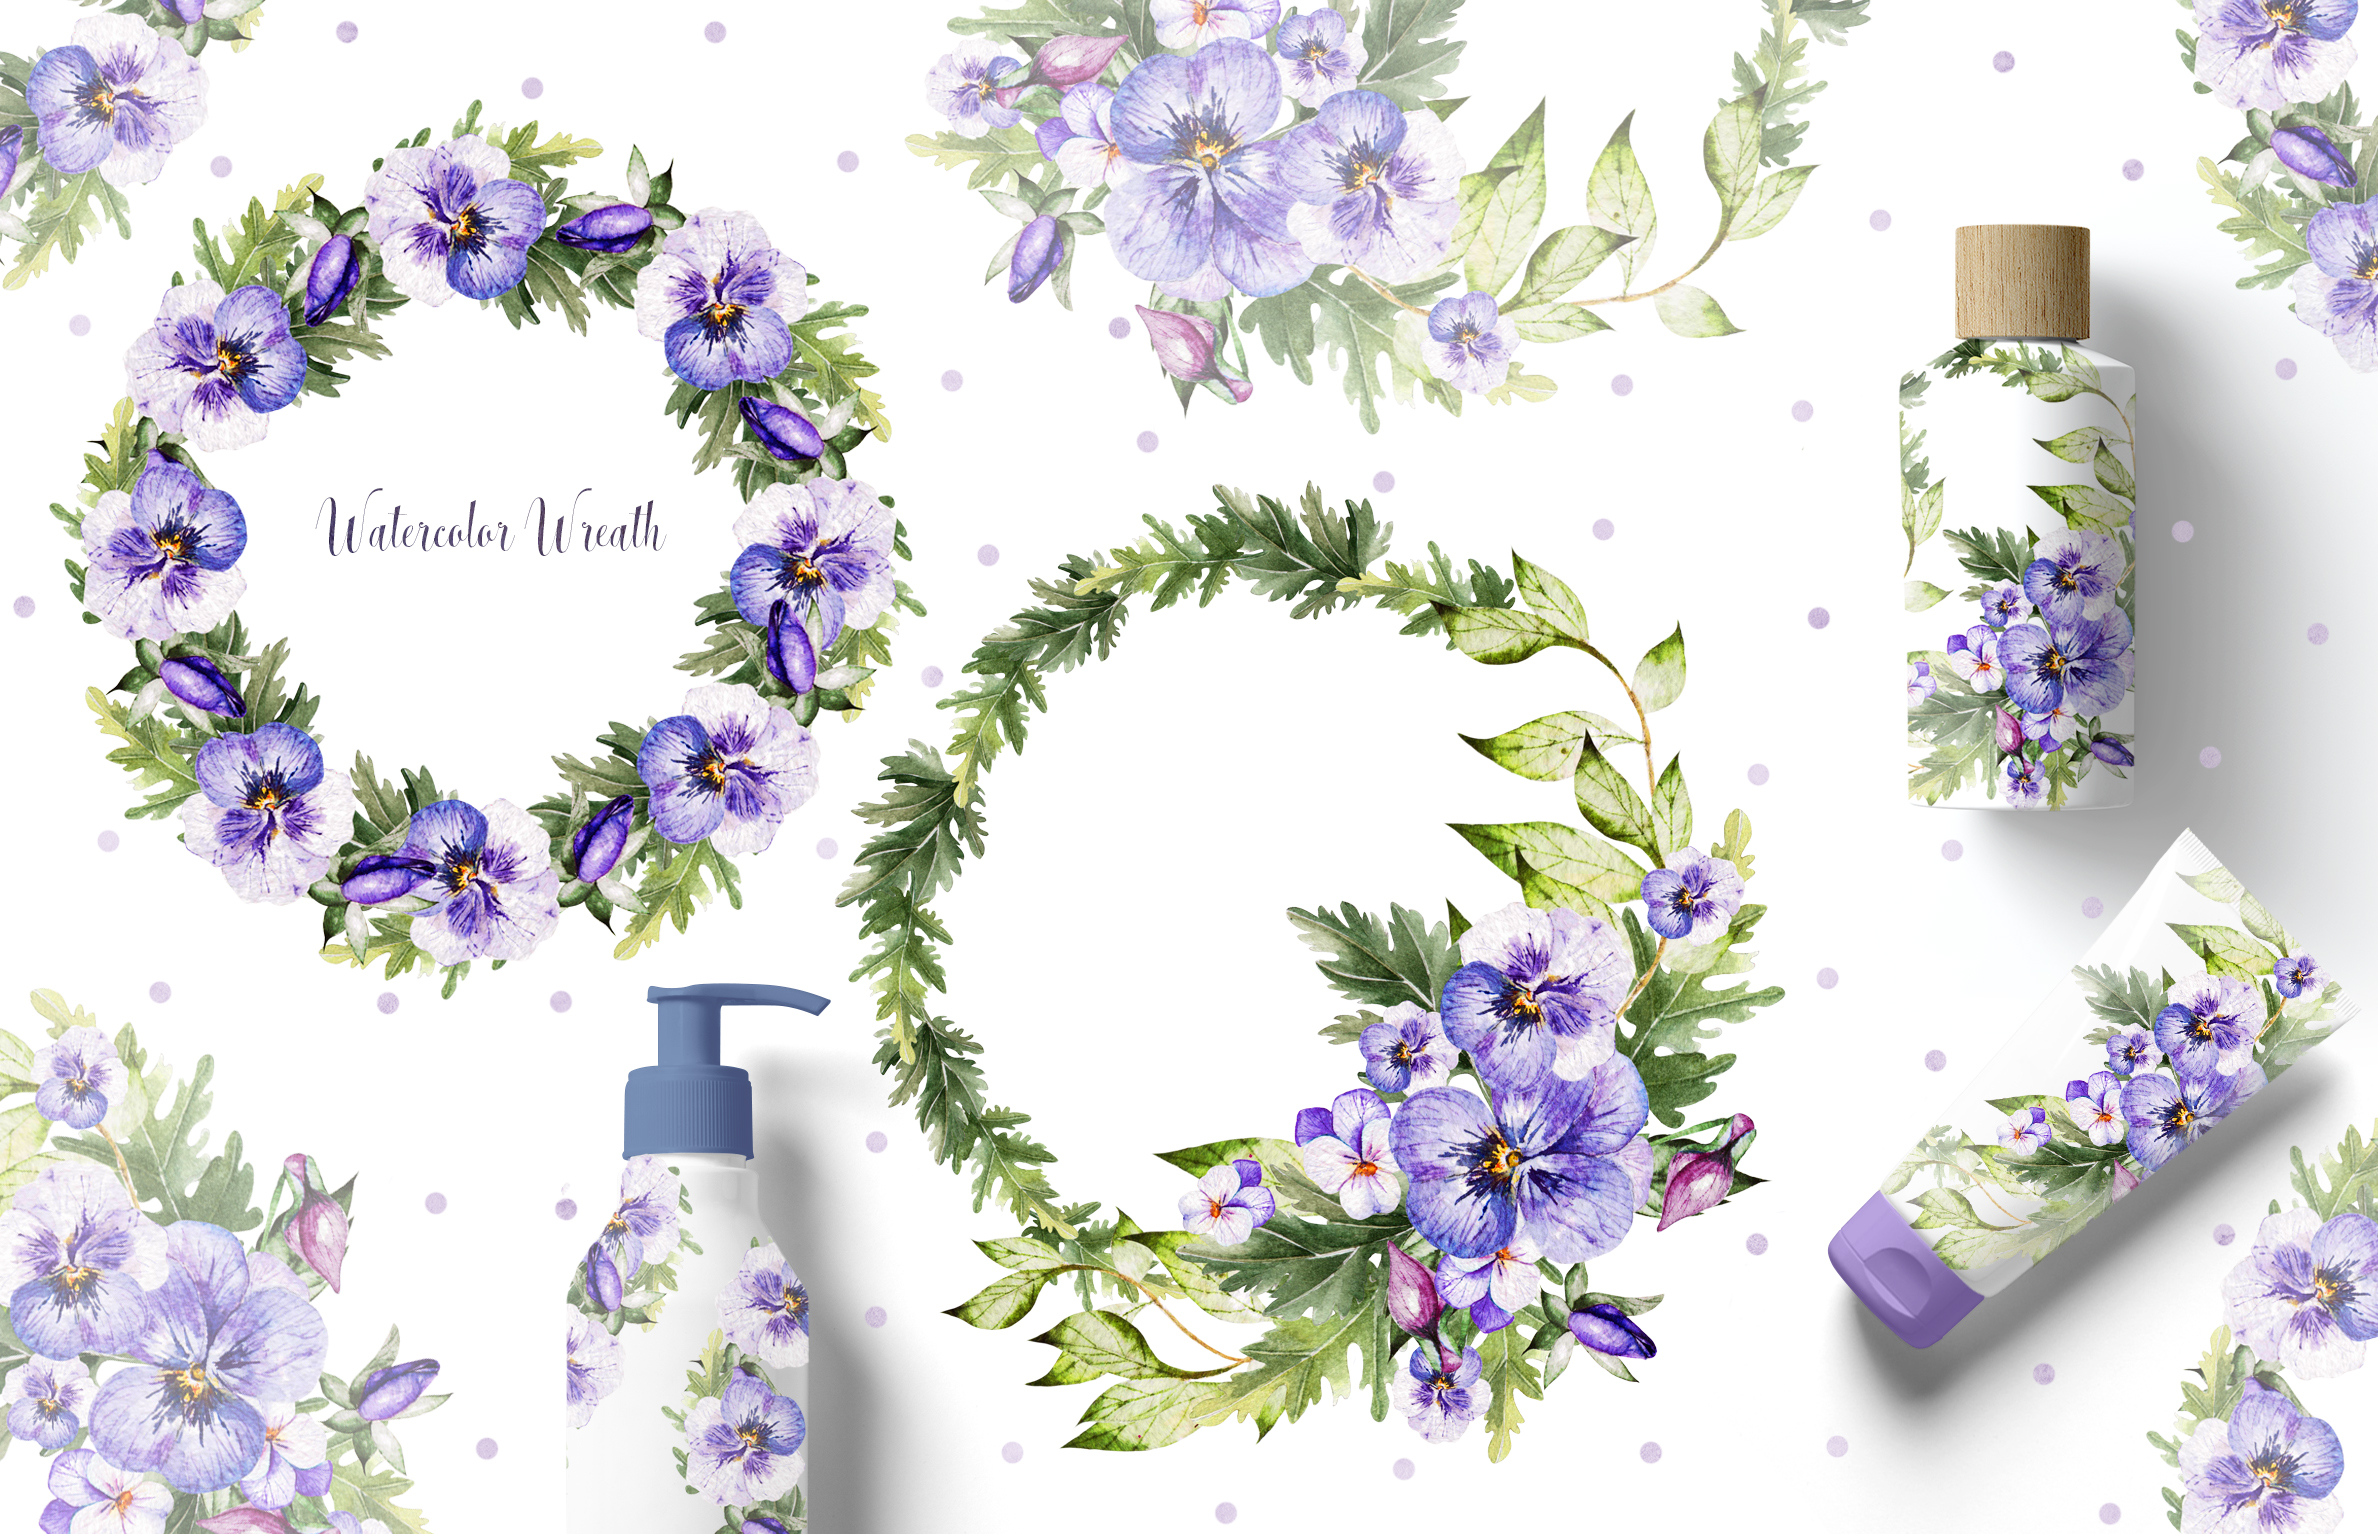 Watercolor PANSY FLOWERS example image 9